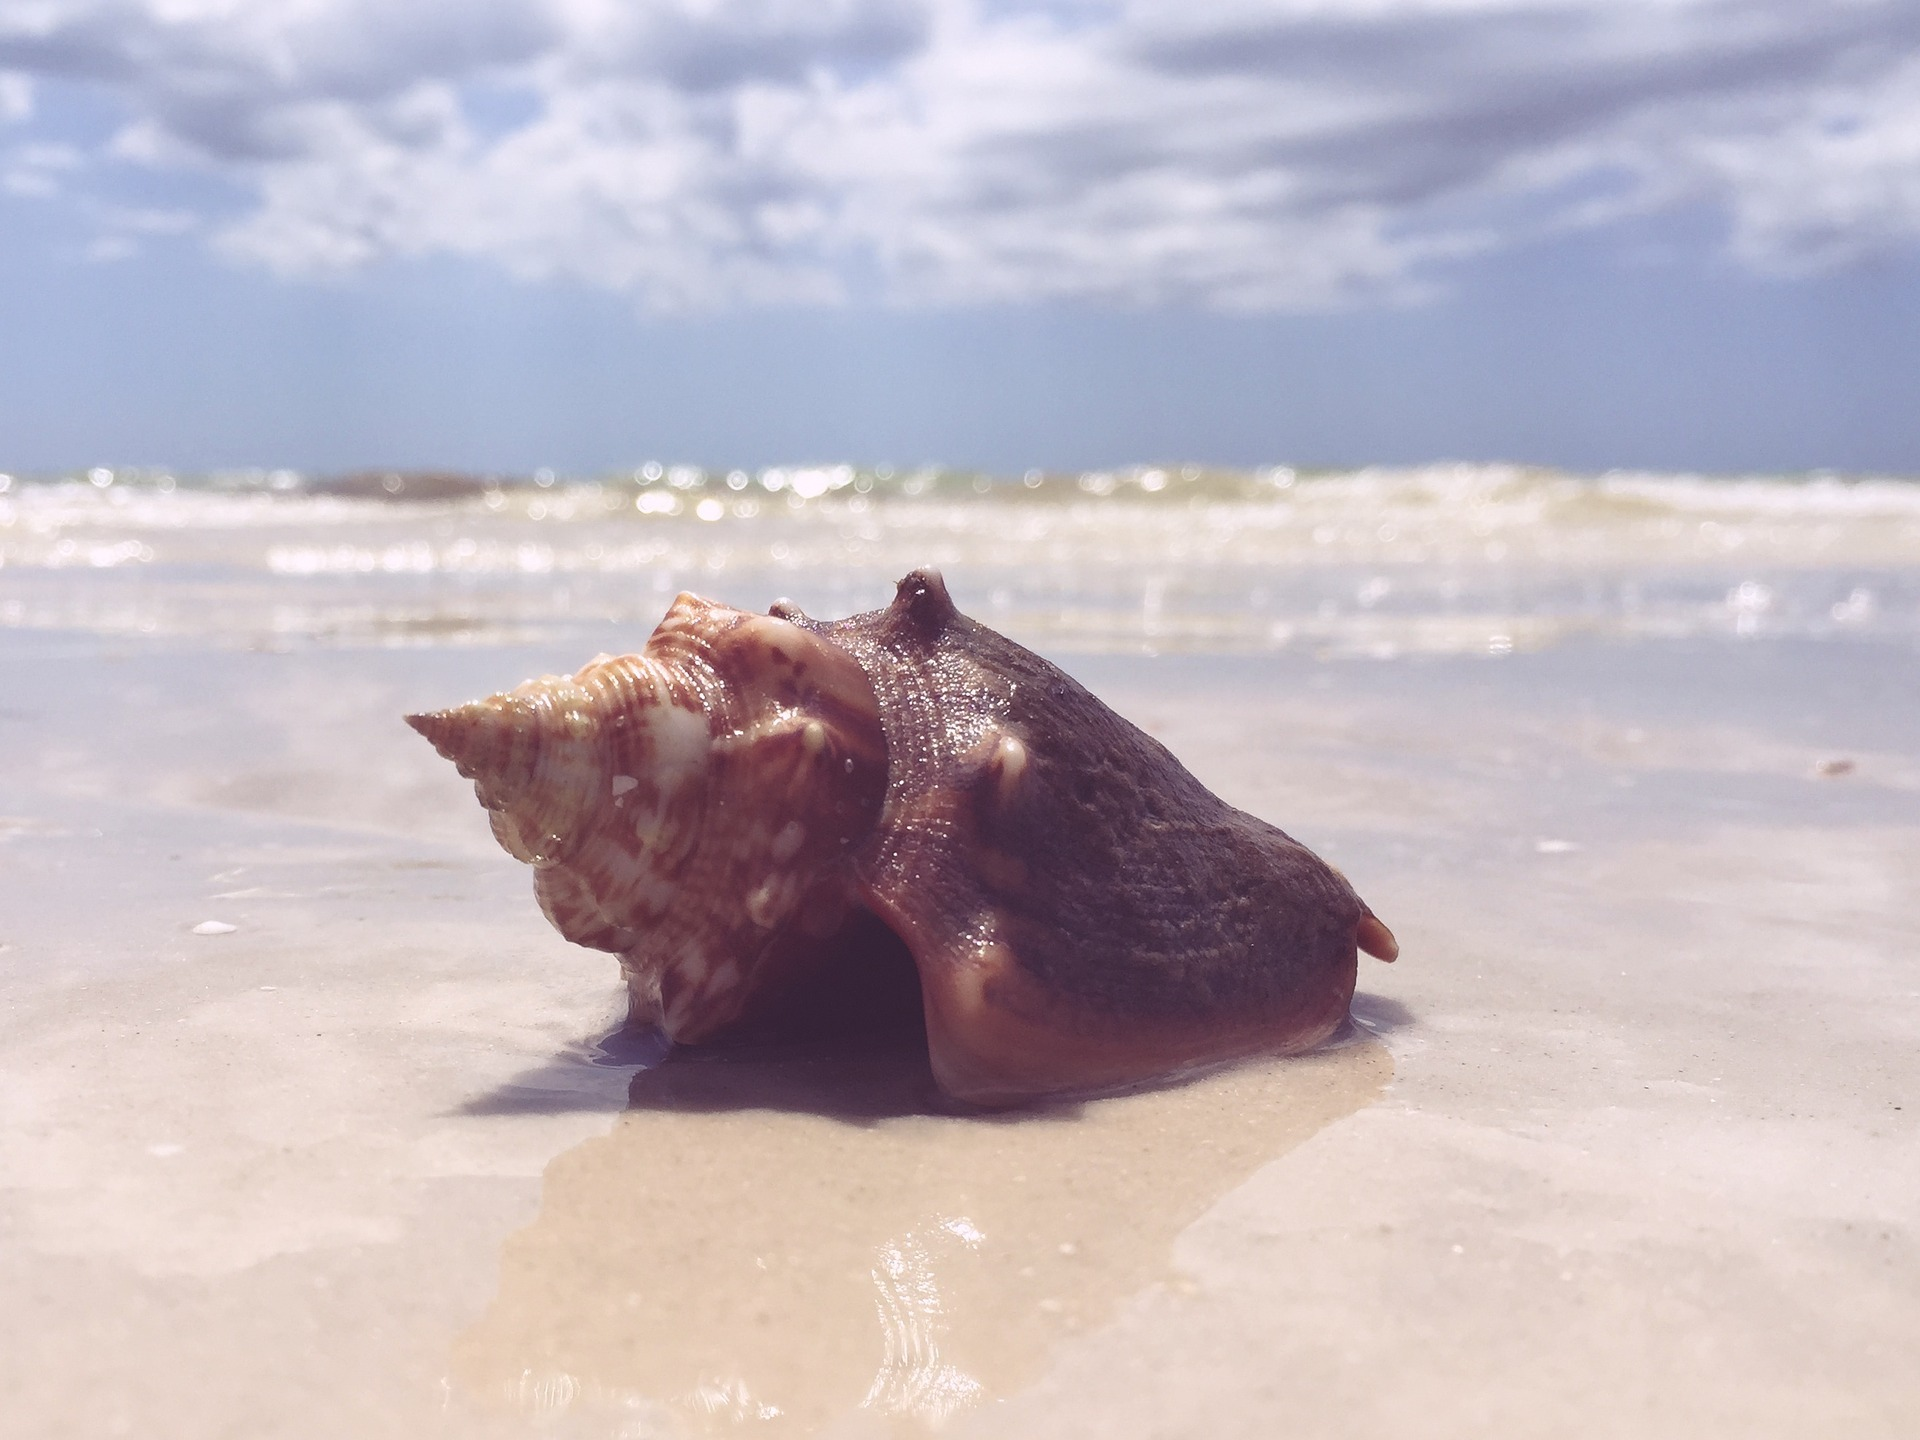 seashell fighting conch beach sand ocean shell in sand